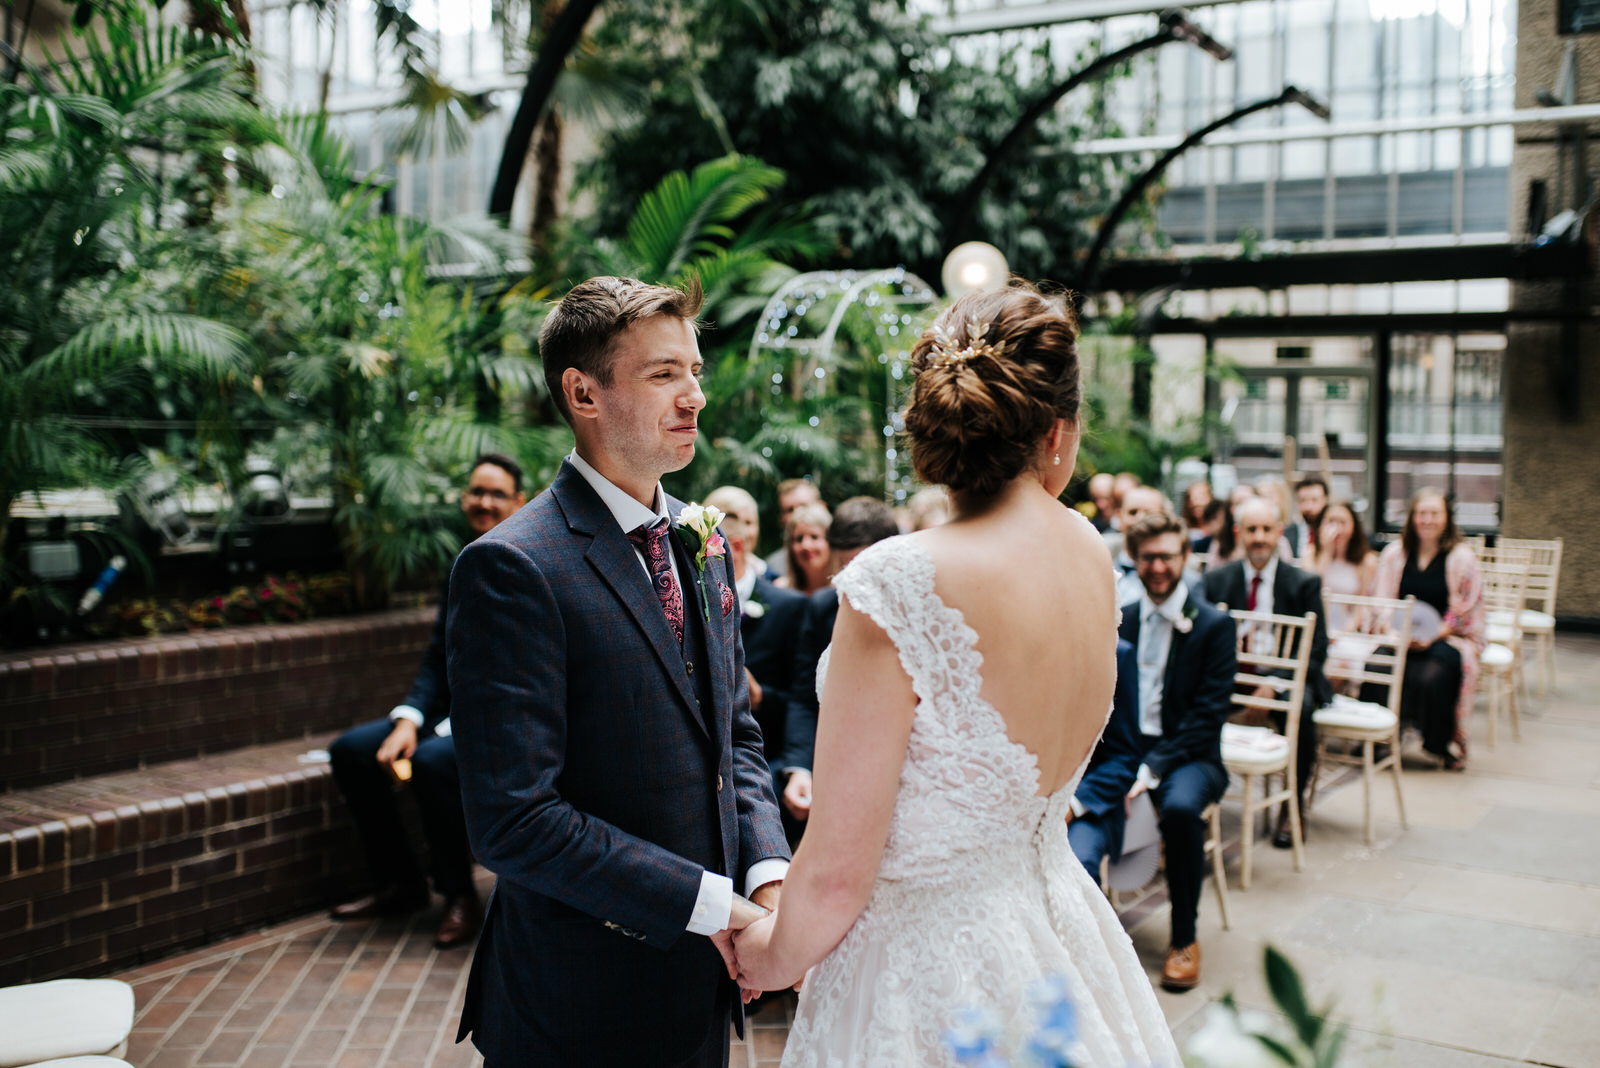 Groom reacts to seeing bride for the first time by holding hands